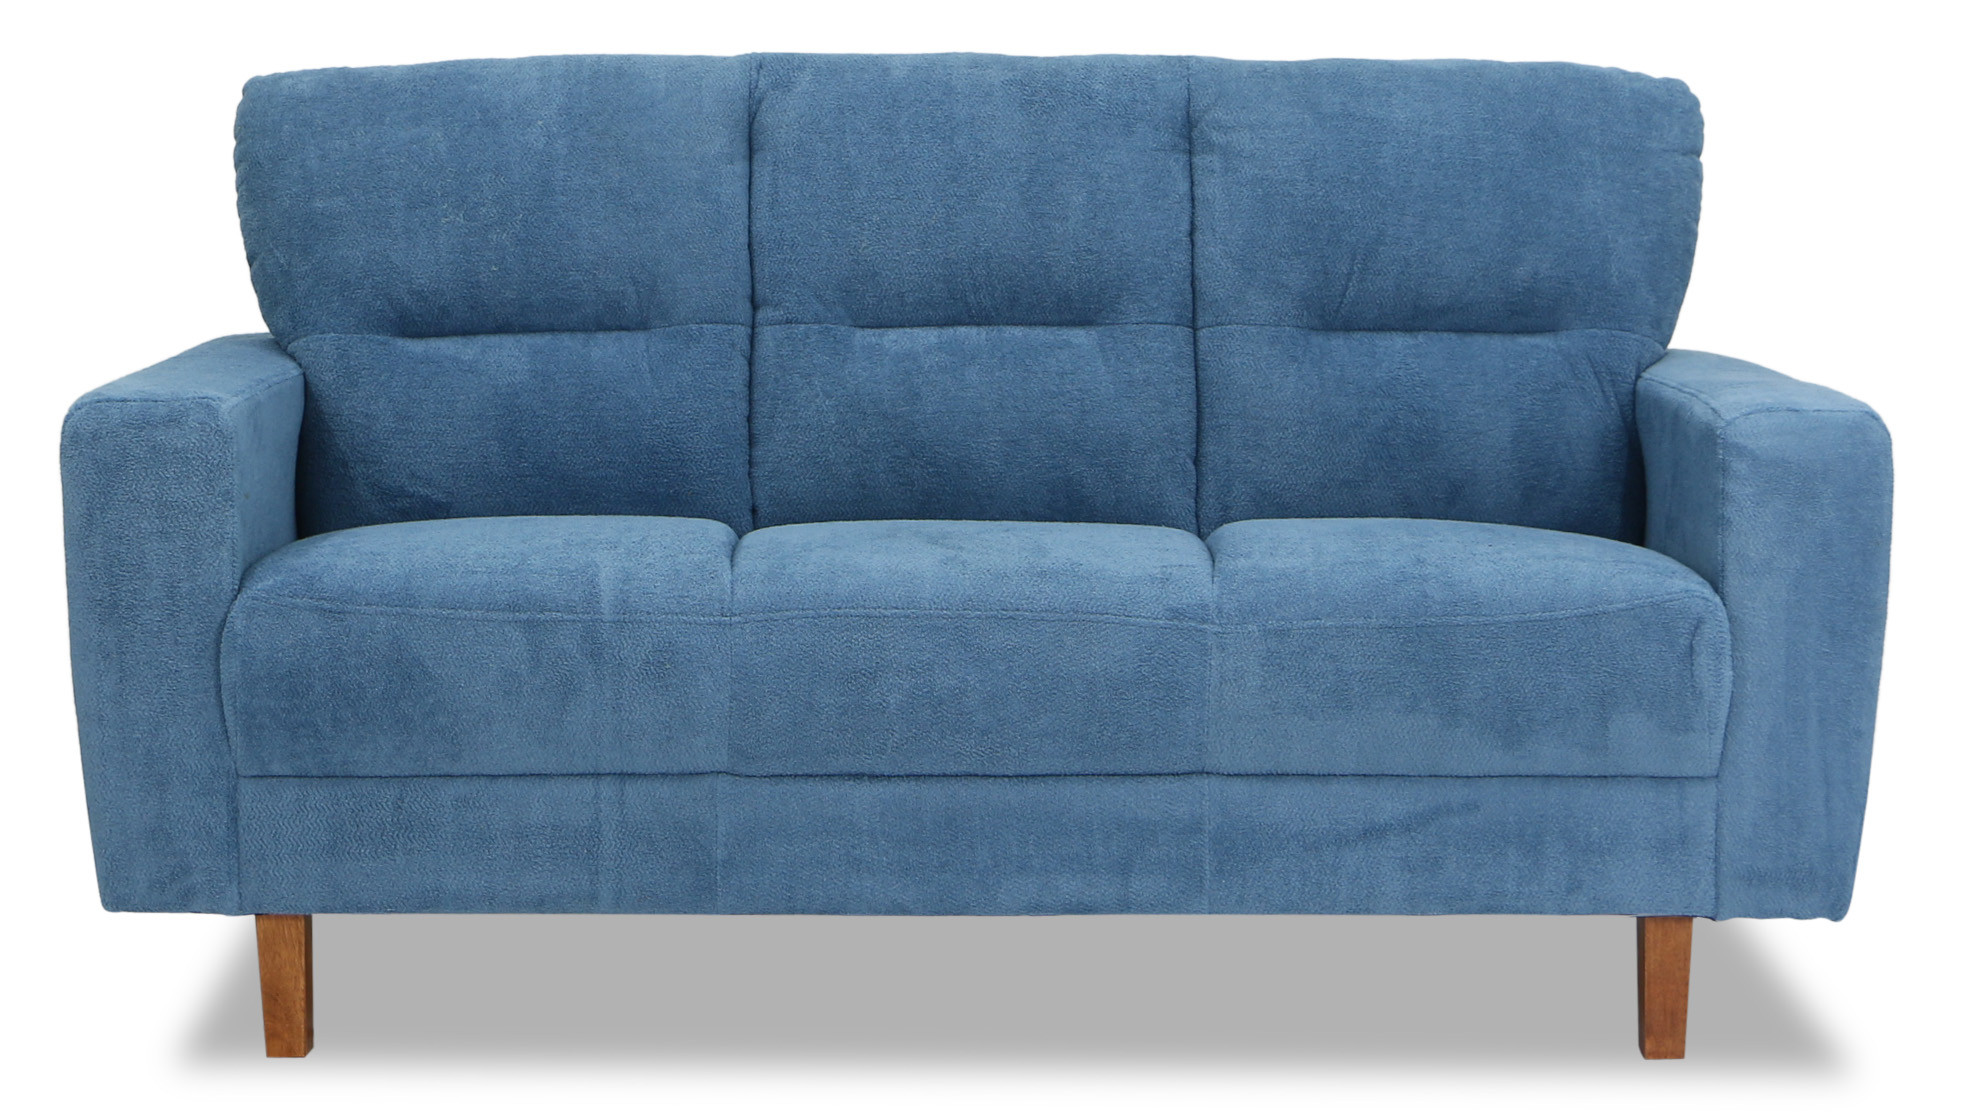 1 Stock Offer Sycamore 3 Seater Sofa In30751